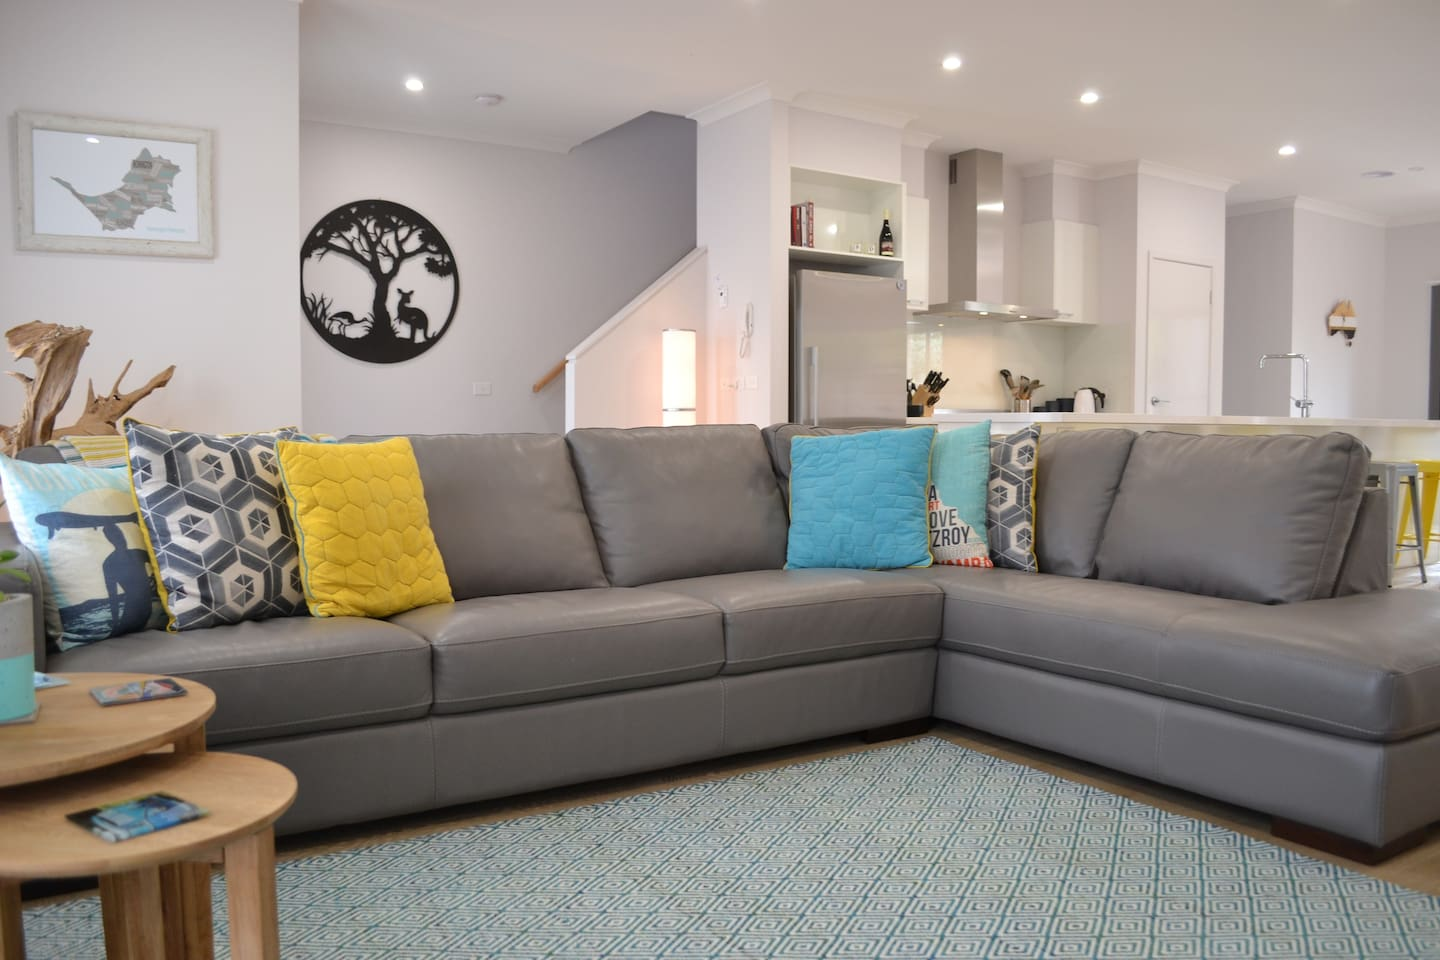 Modern, bright and comfortable air-conditioned living space.